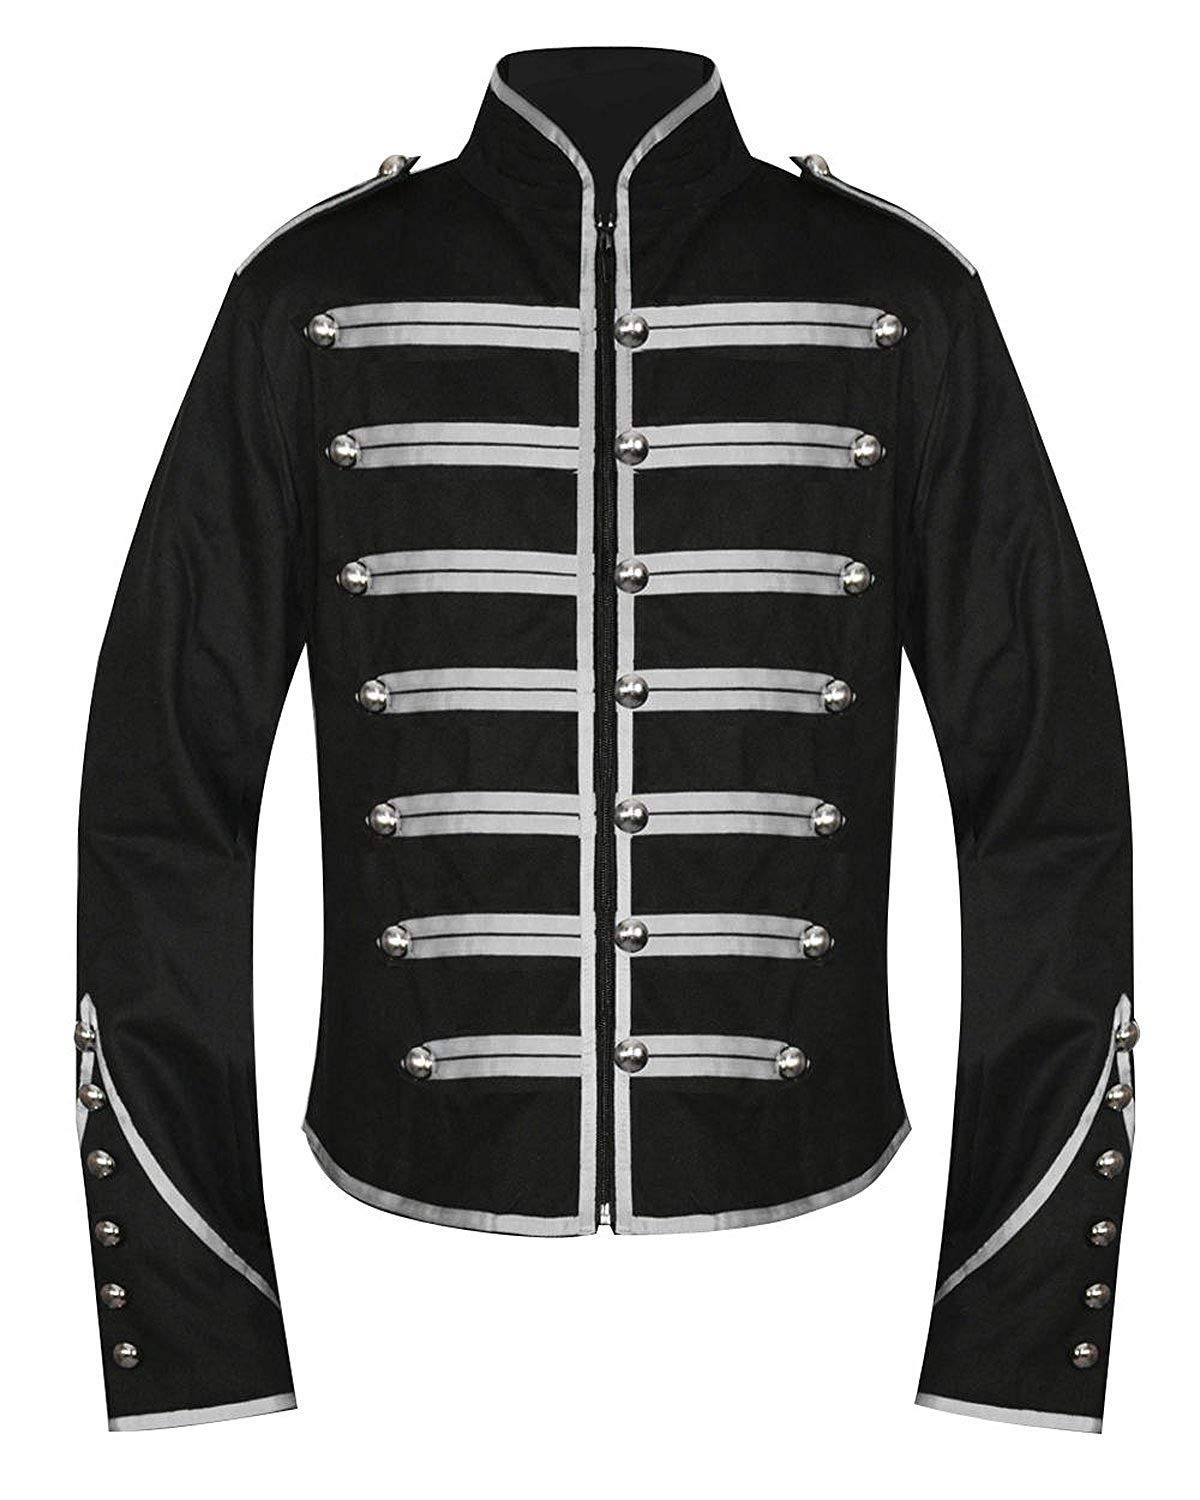 Banned Men's Black and Silver Military Jacket - Medium by Banned